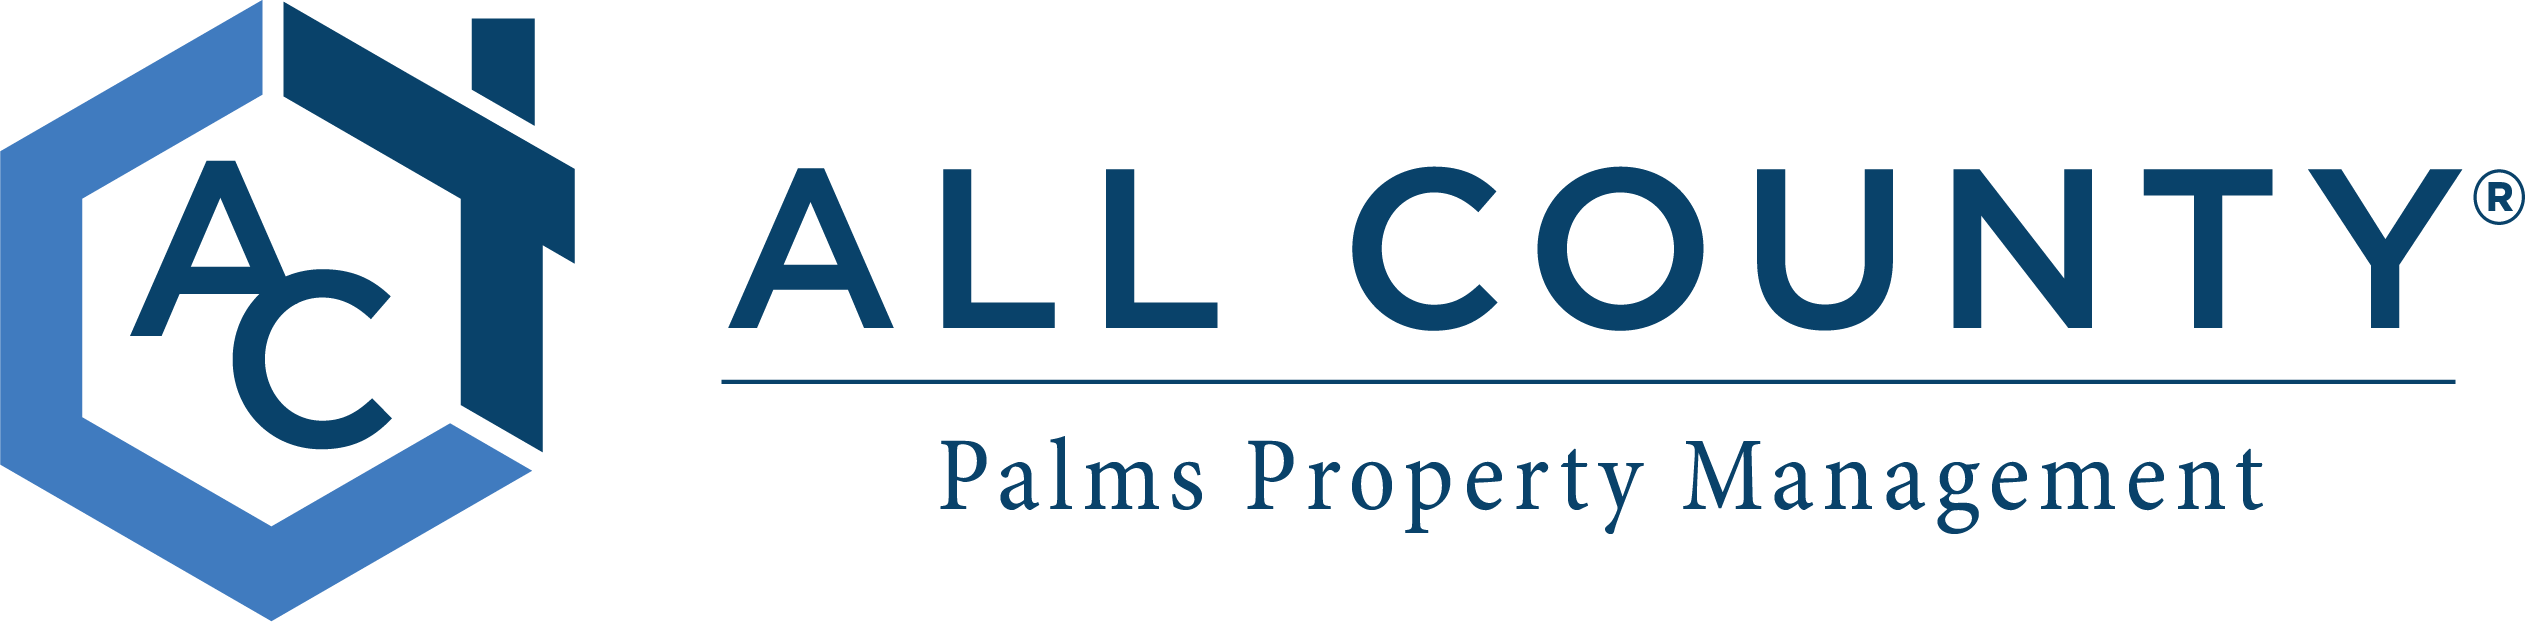 All County Palms Property Management